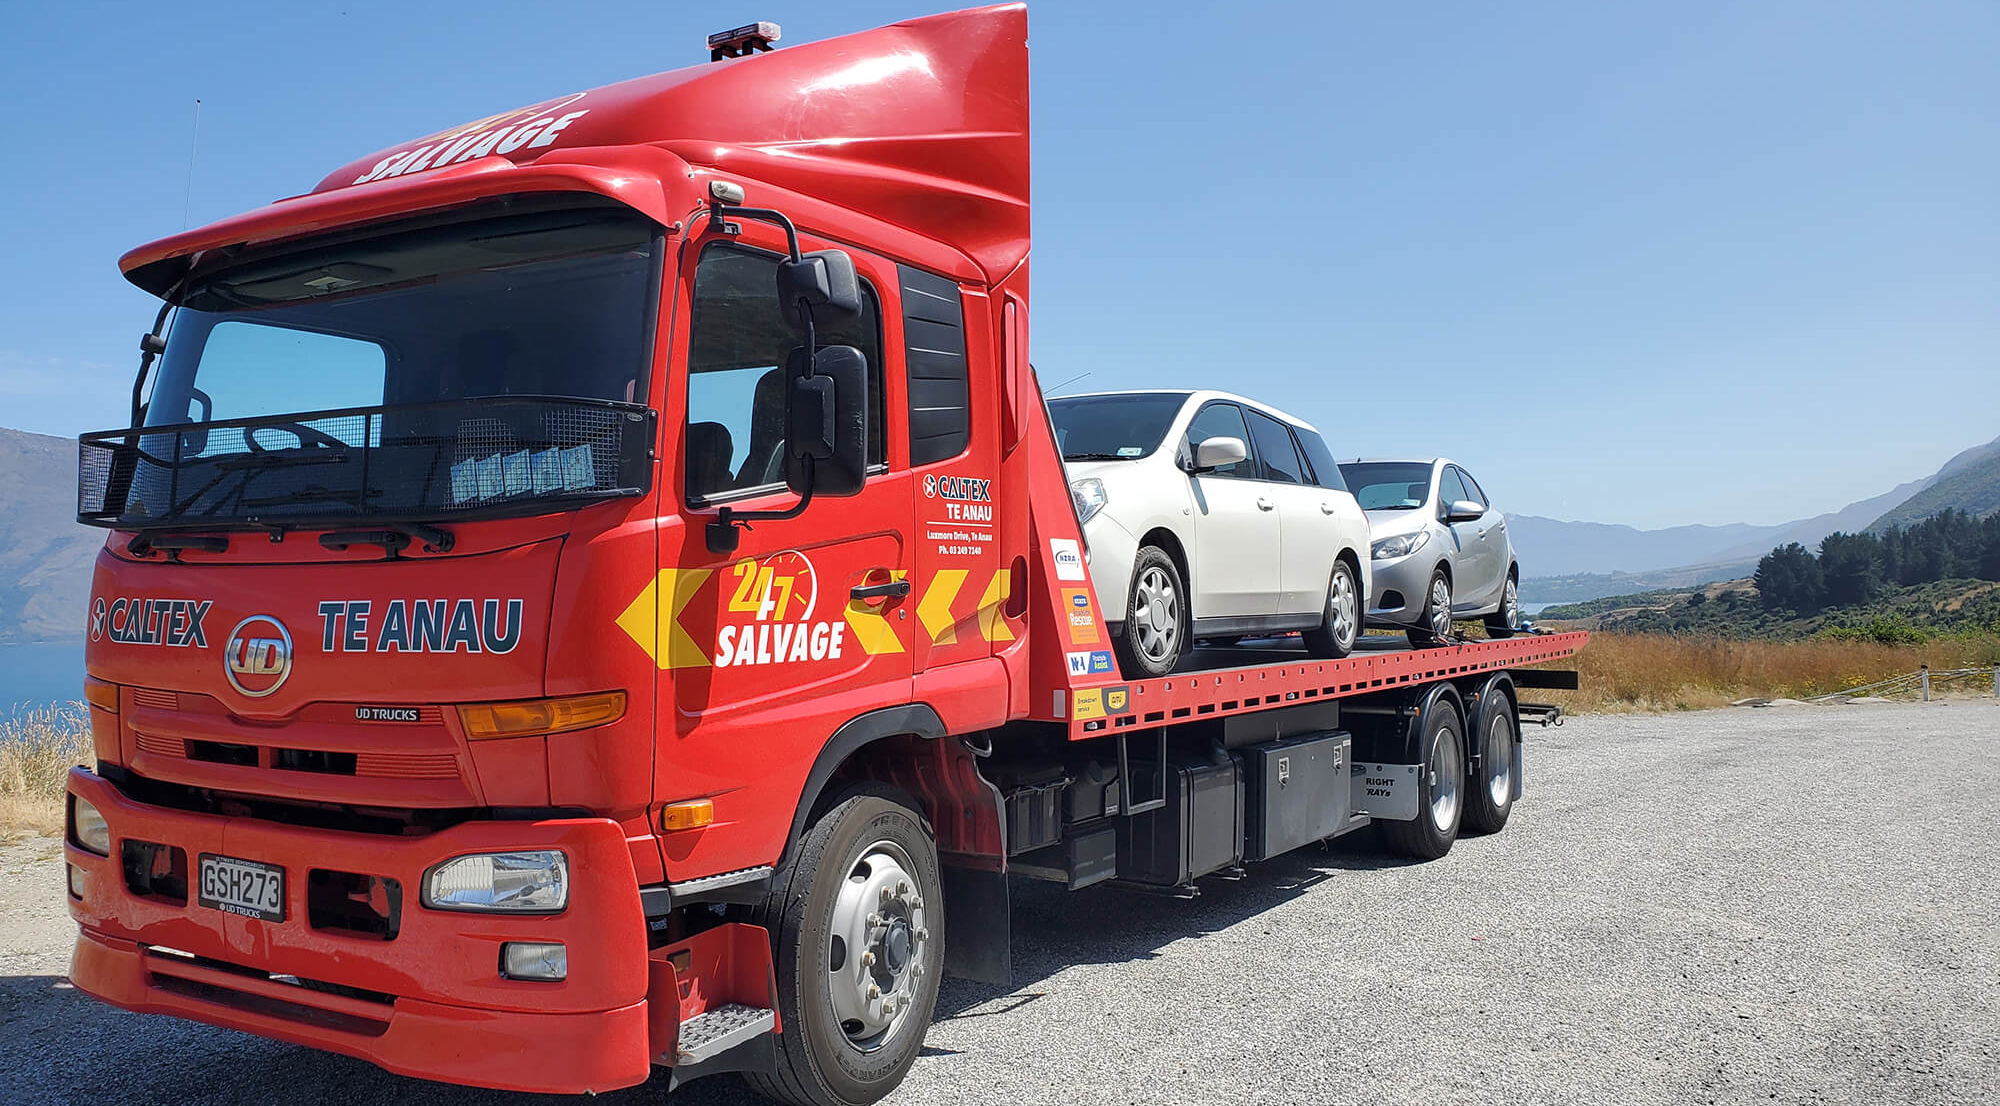 Large red Caltex salvage vehicle with two cars onboard